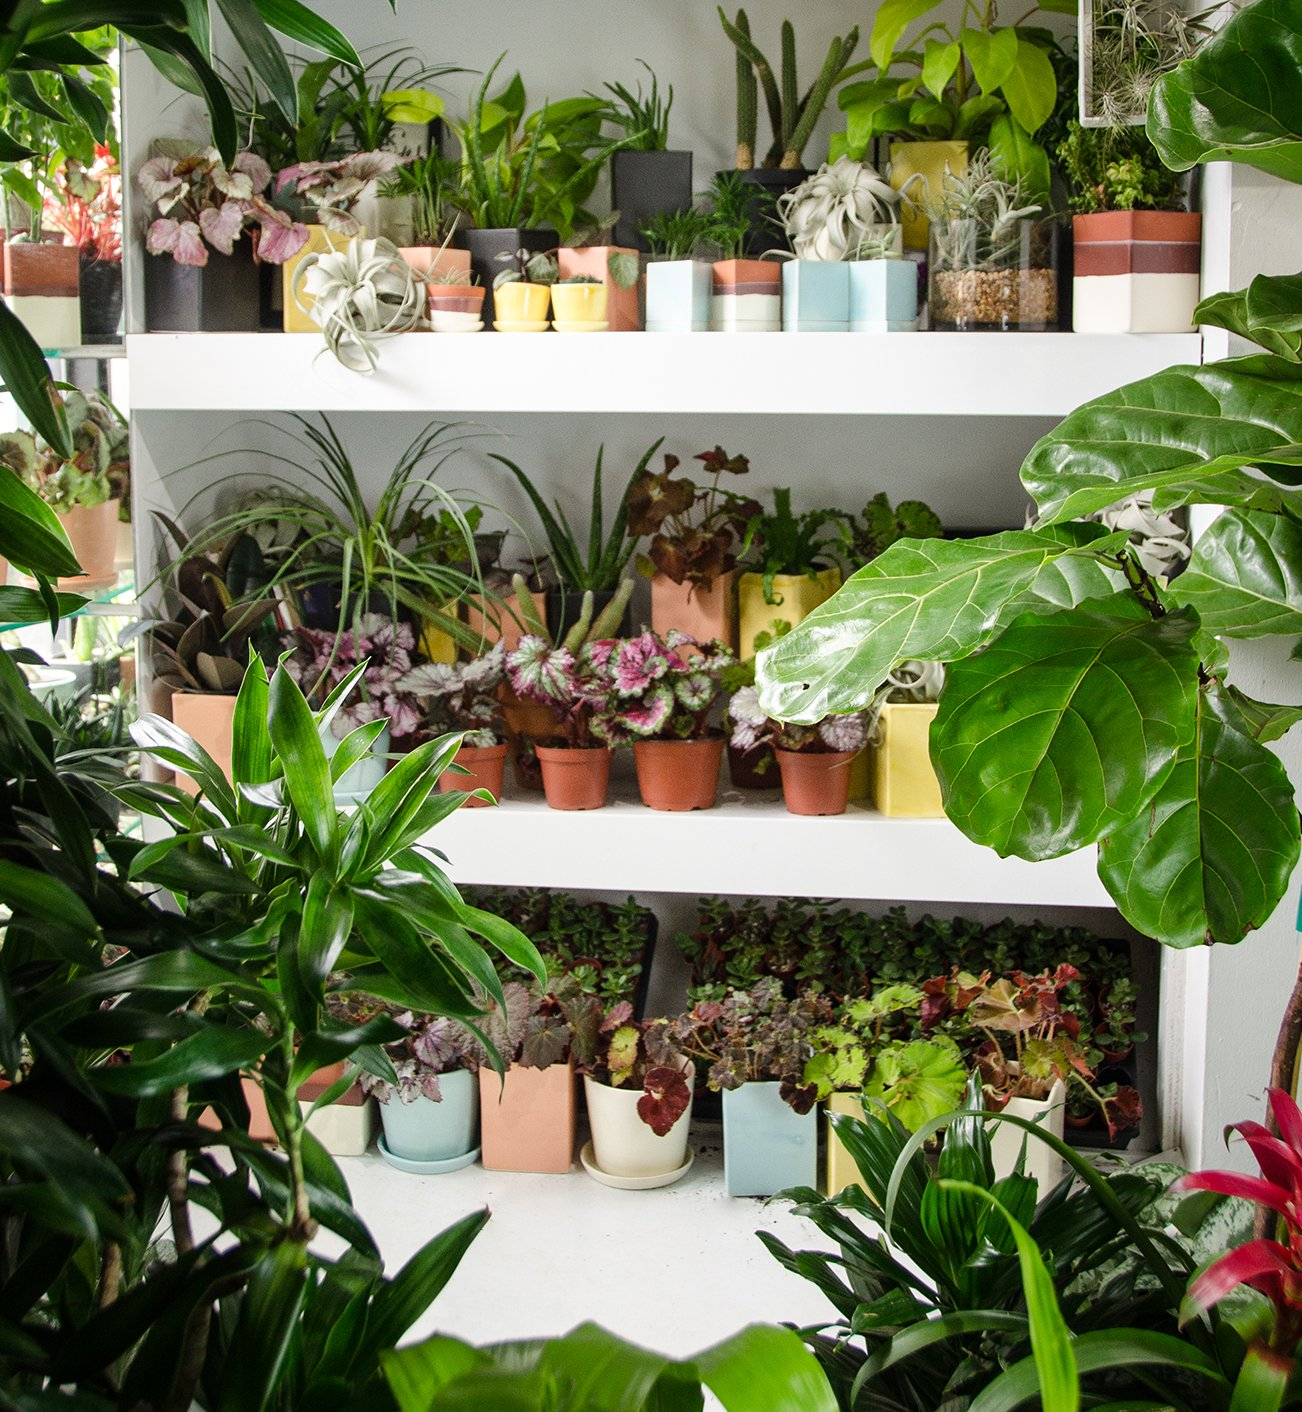 Indoor Potted Plants Delivered to Your Door – The Sill on unknown plants, philadelphia plants, sahara plants,